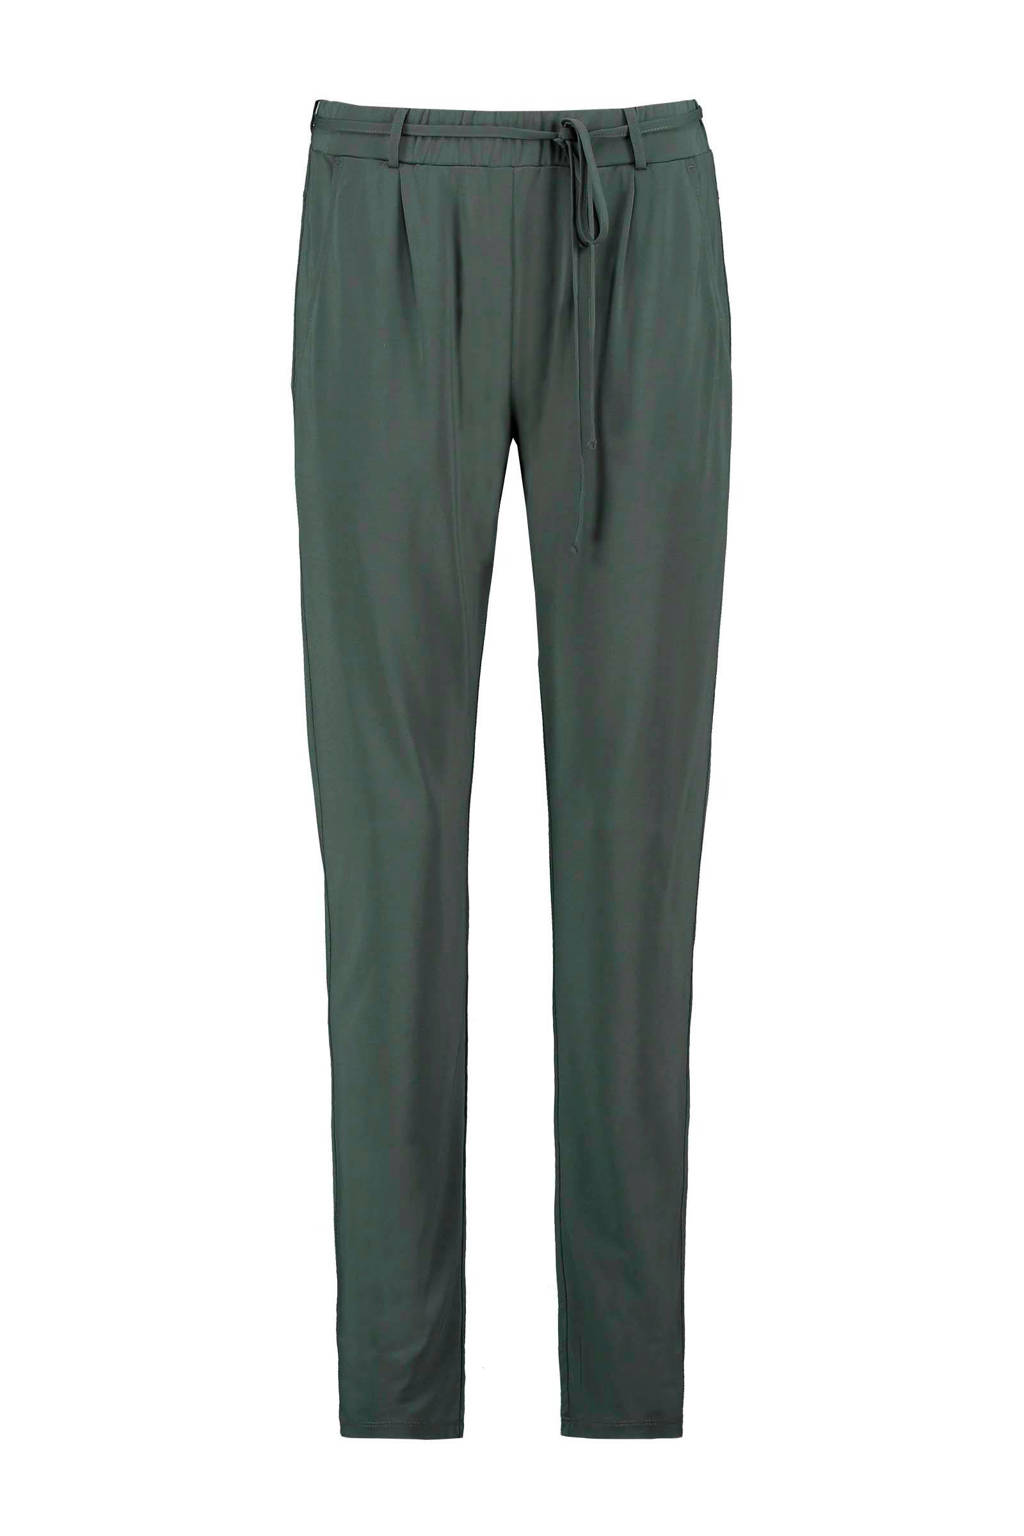 Expresso tapered fit broek Claire donkergroen, Donkergroen